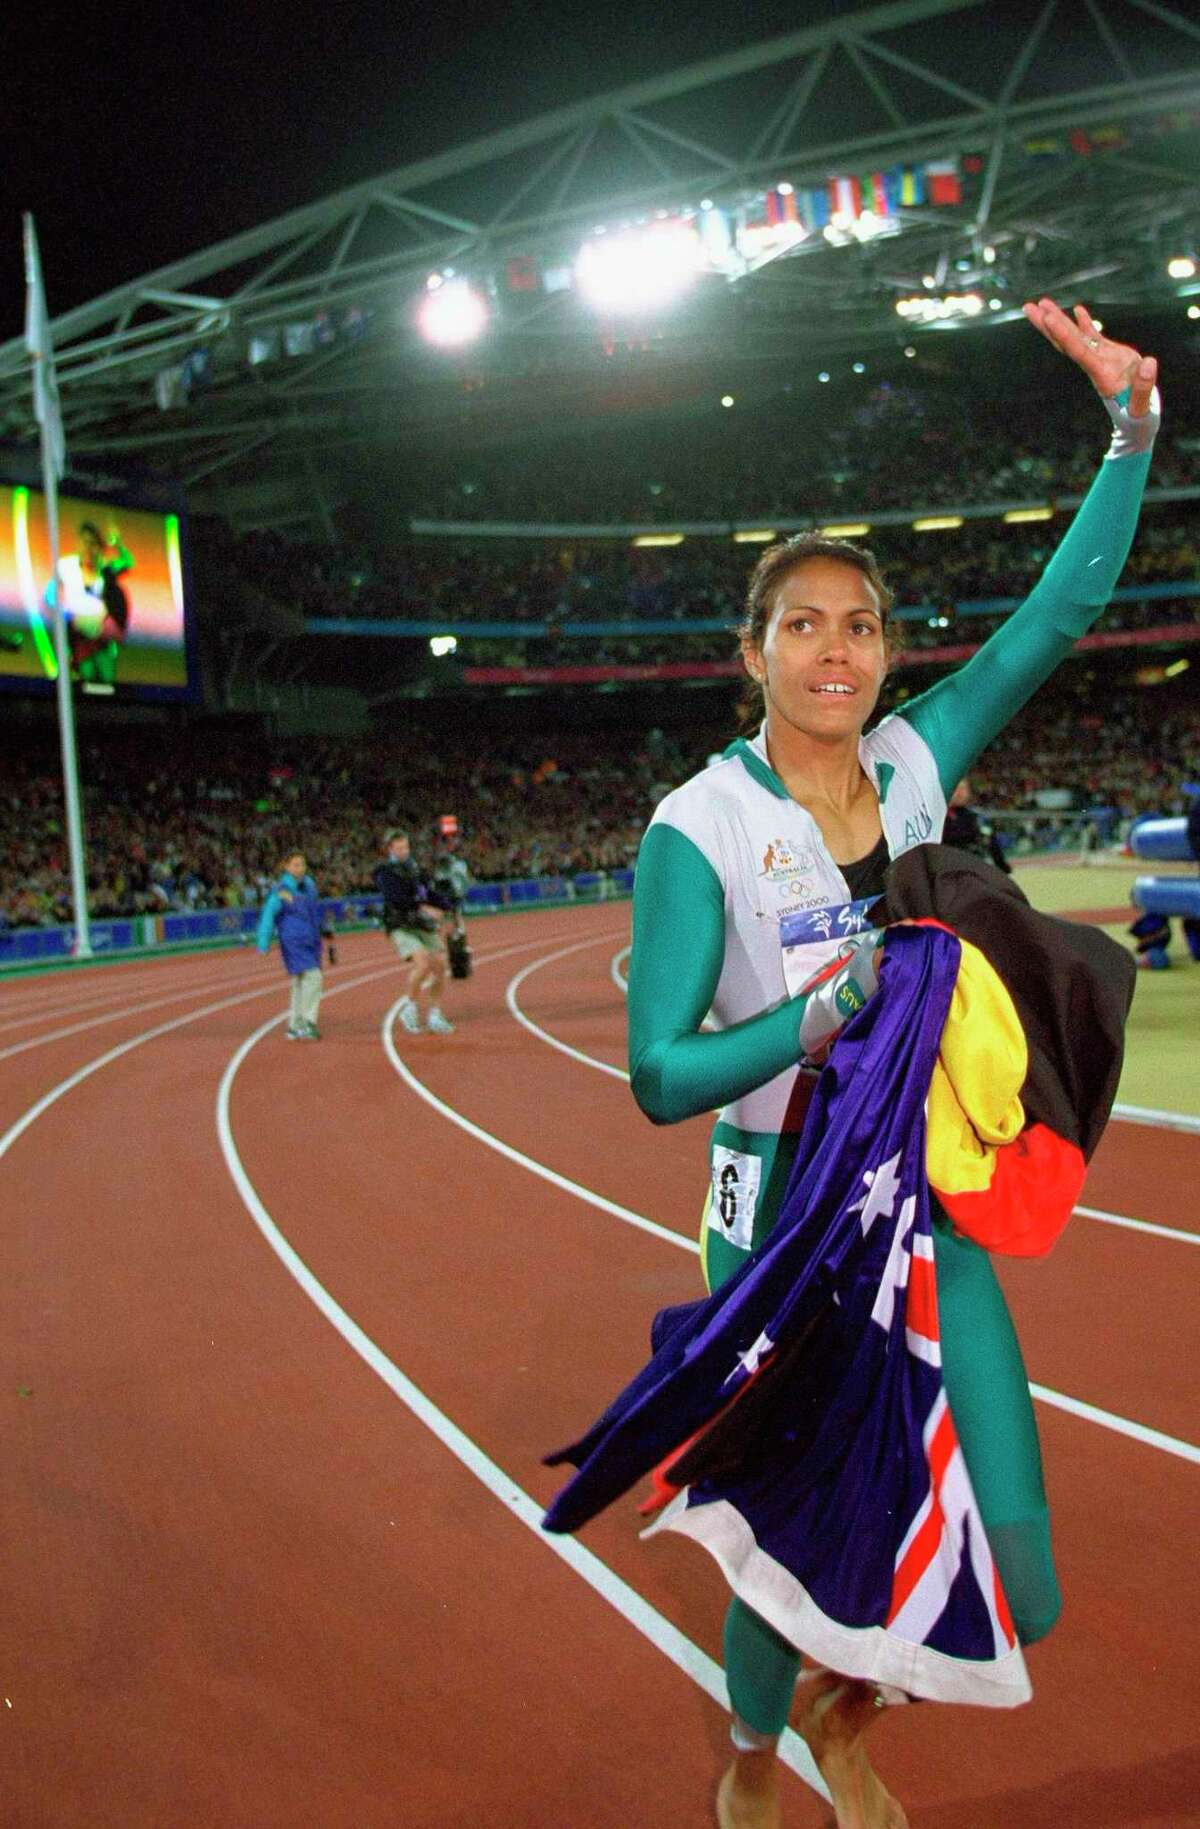 25 Sep 2000: Cathy Freeman of Australia celebrates winning Gold in the Womens 400m Final at the Olympic Stadium on Day Ten of the Sydney 2000 Olympic Games in Sydney, Australia. Mandatory Credit: Mike Powell /Allsport